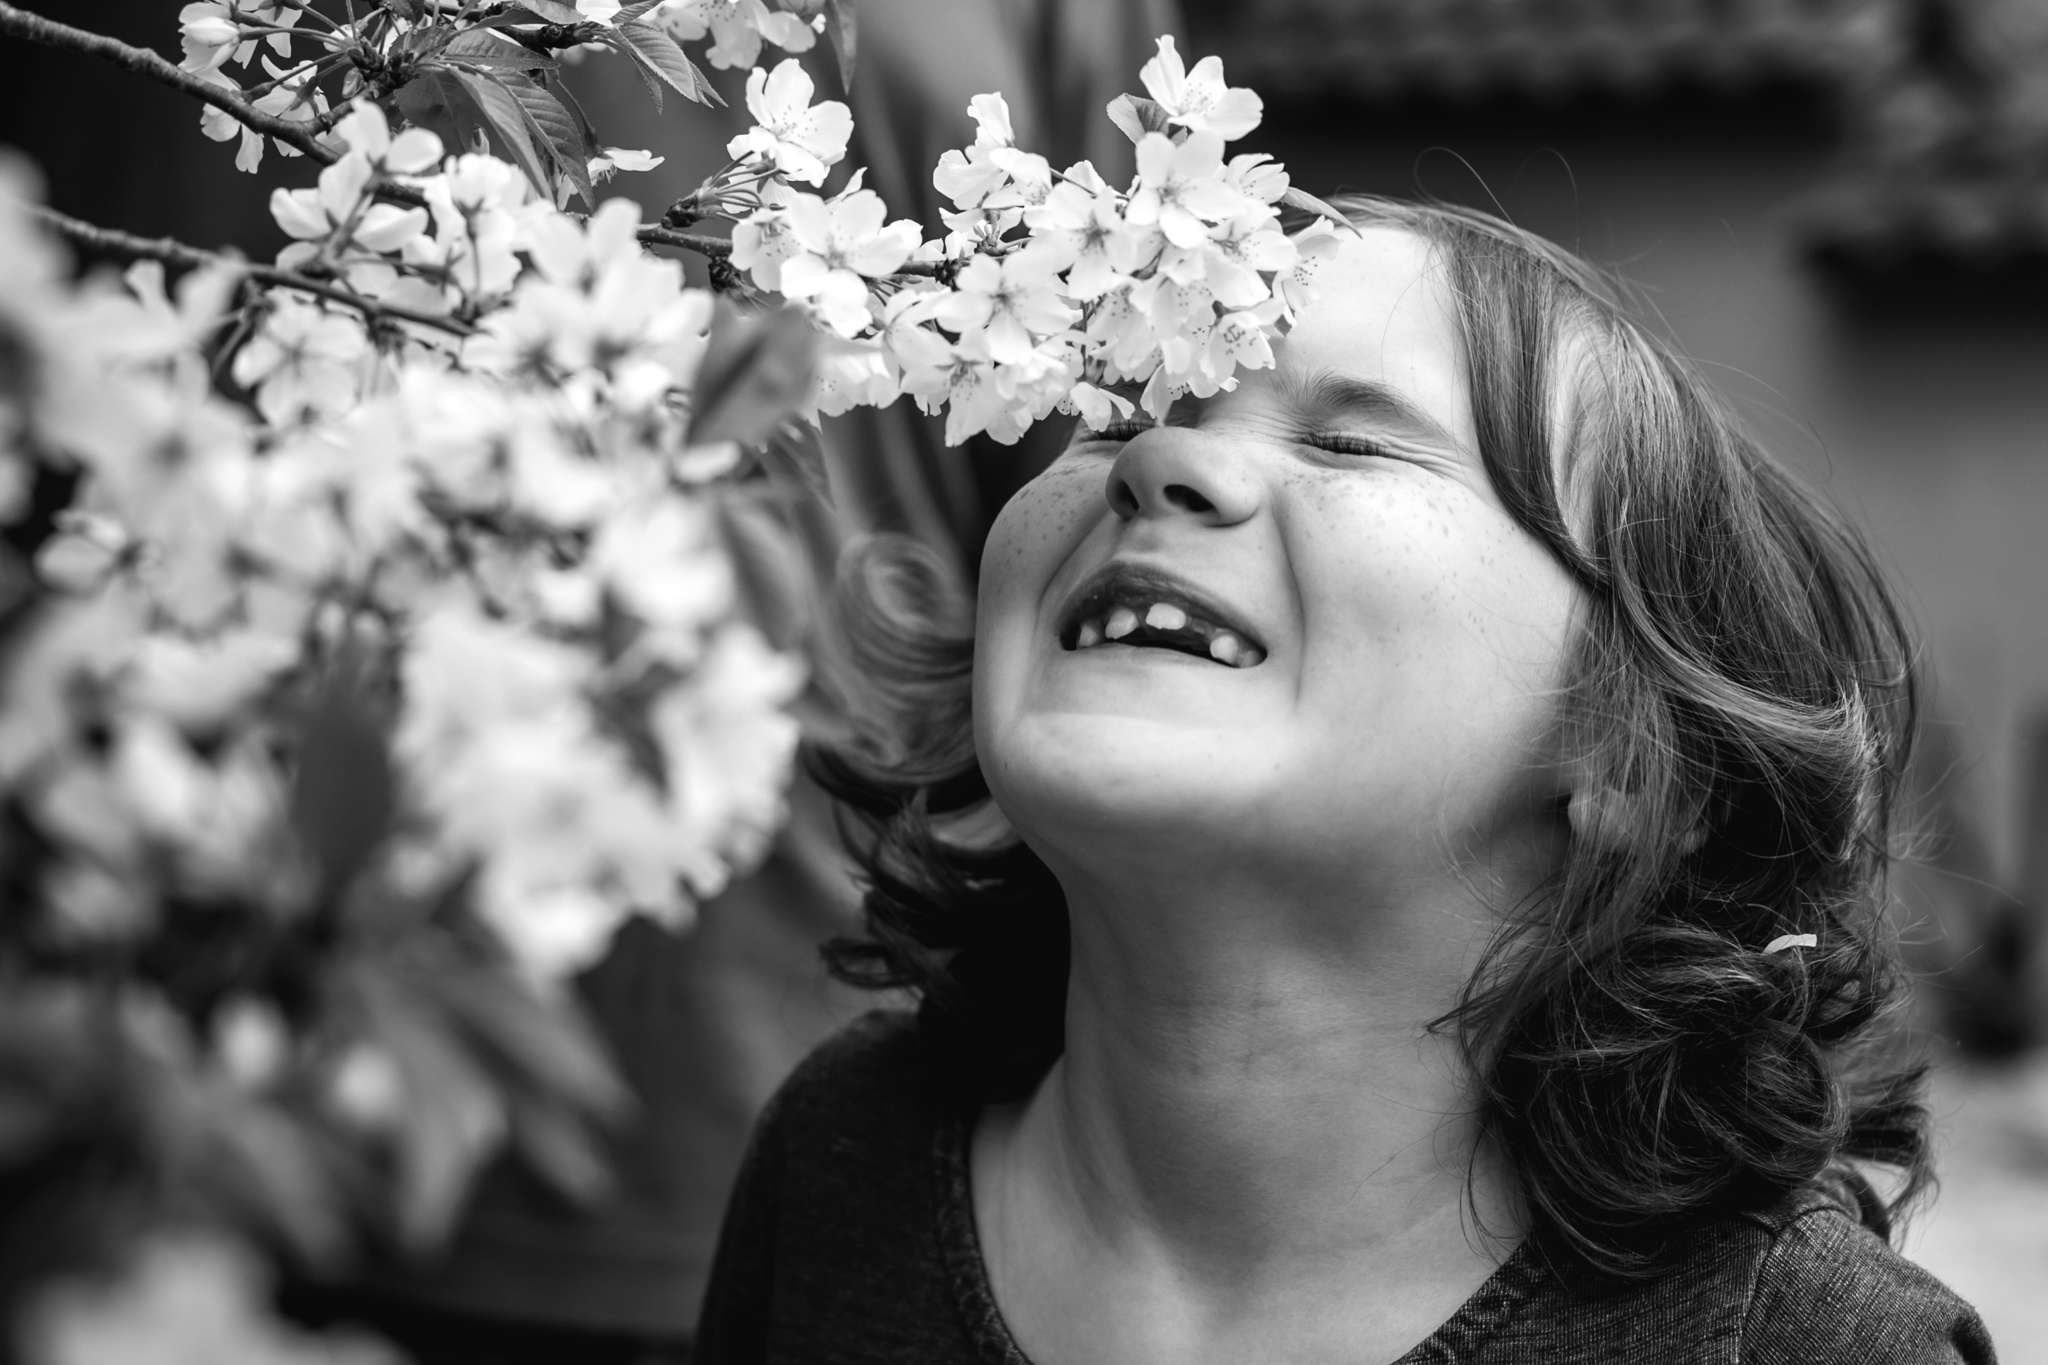 a girl touches her forehead onto some flowers and smiles